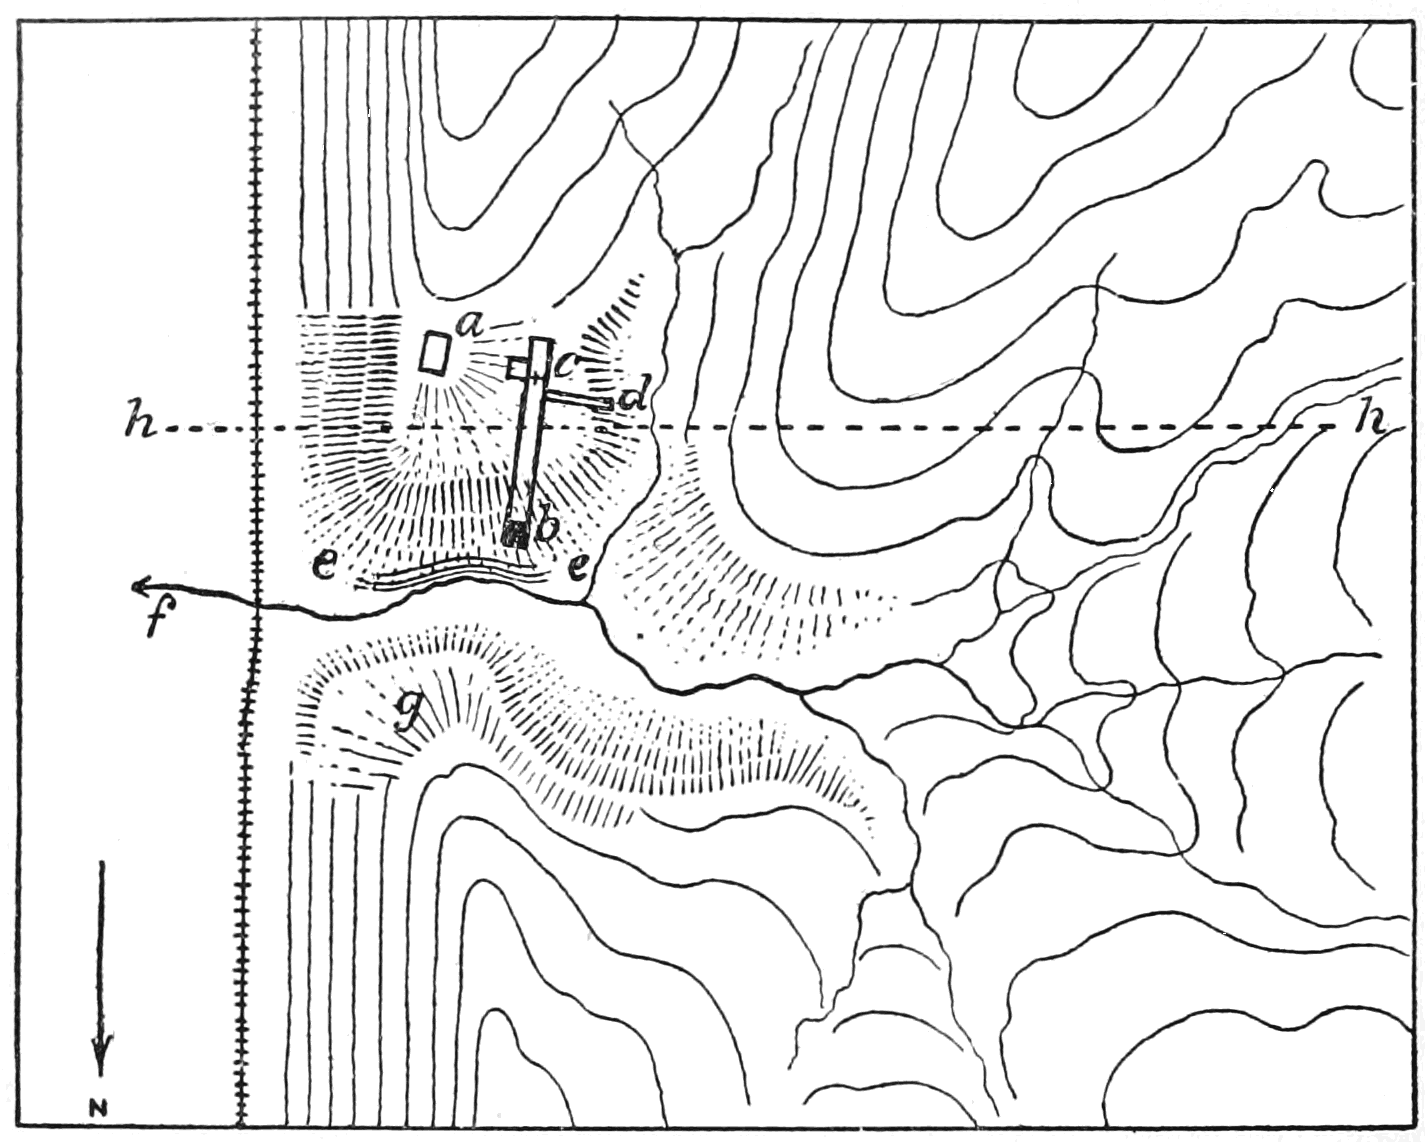 PSM V62 D470 Sketch map of the lansing site.png